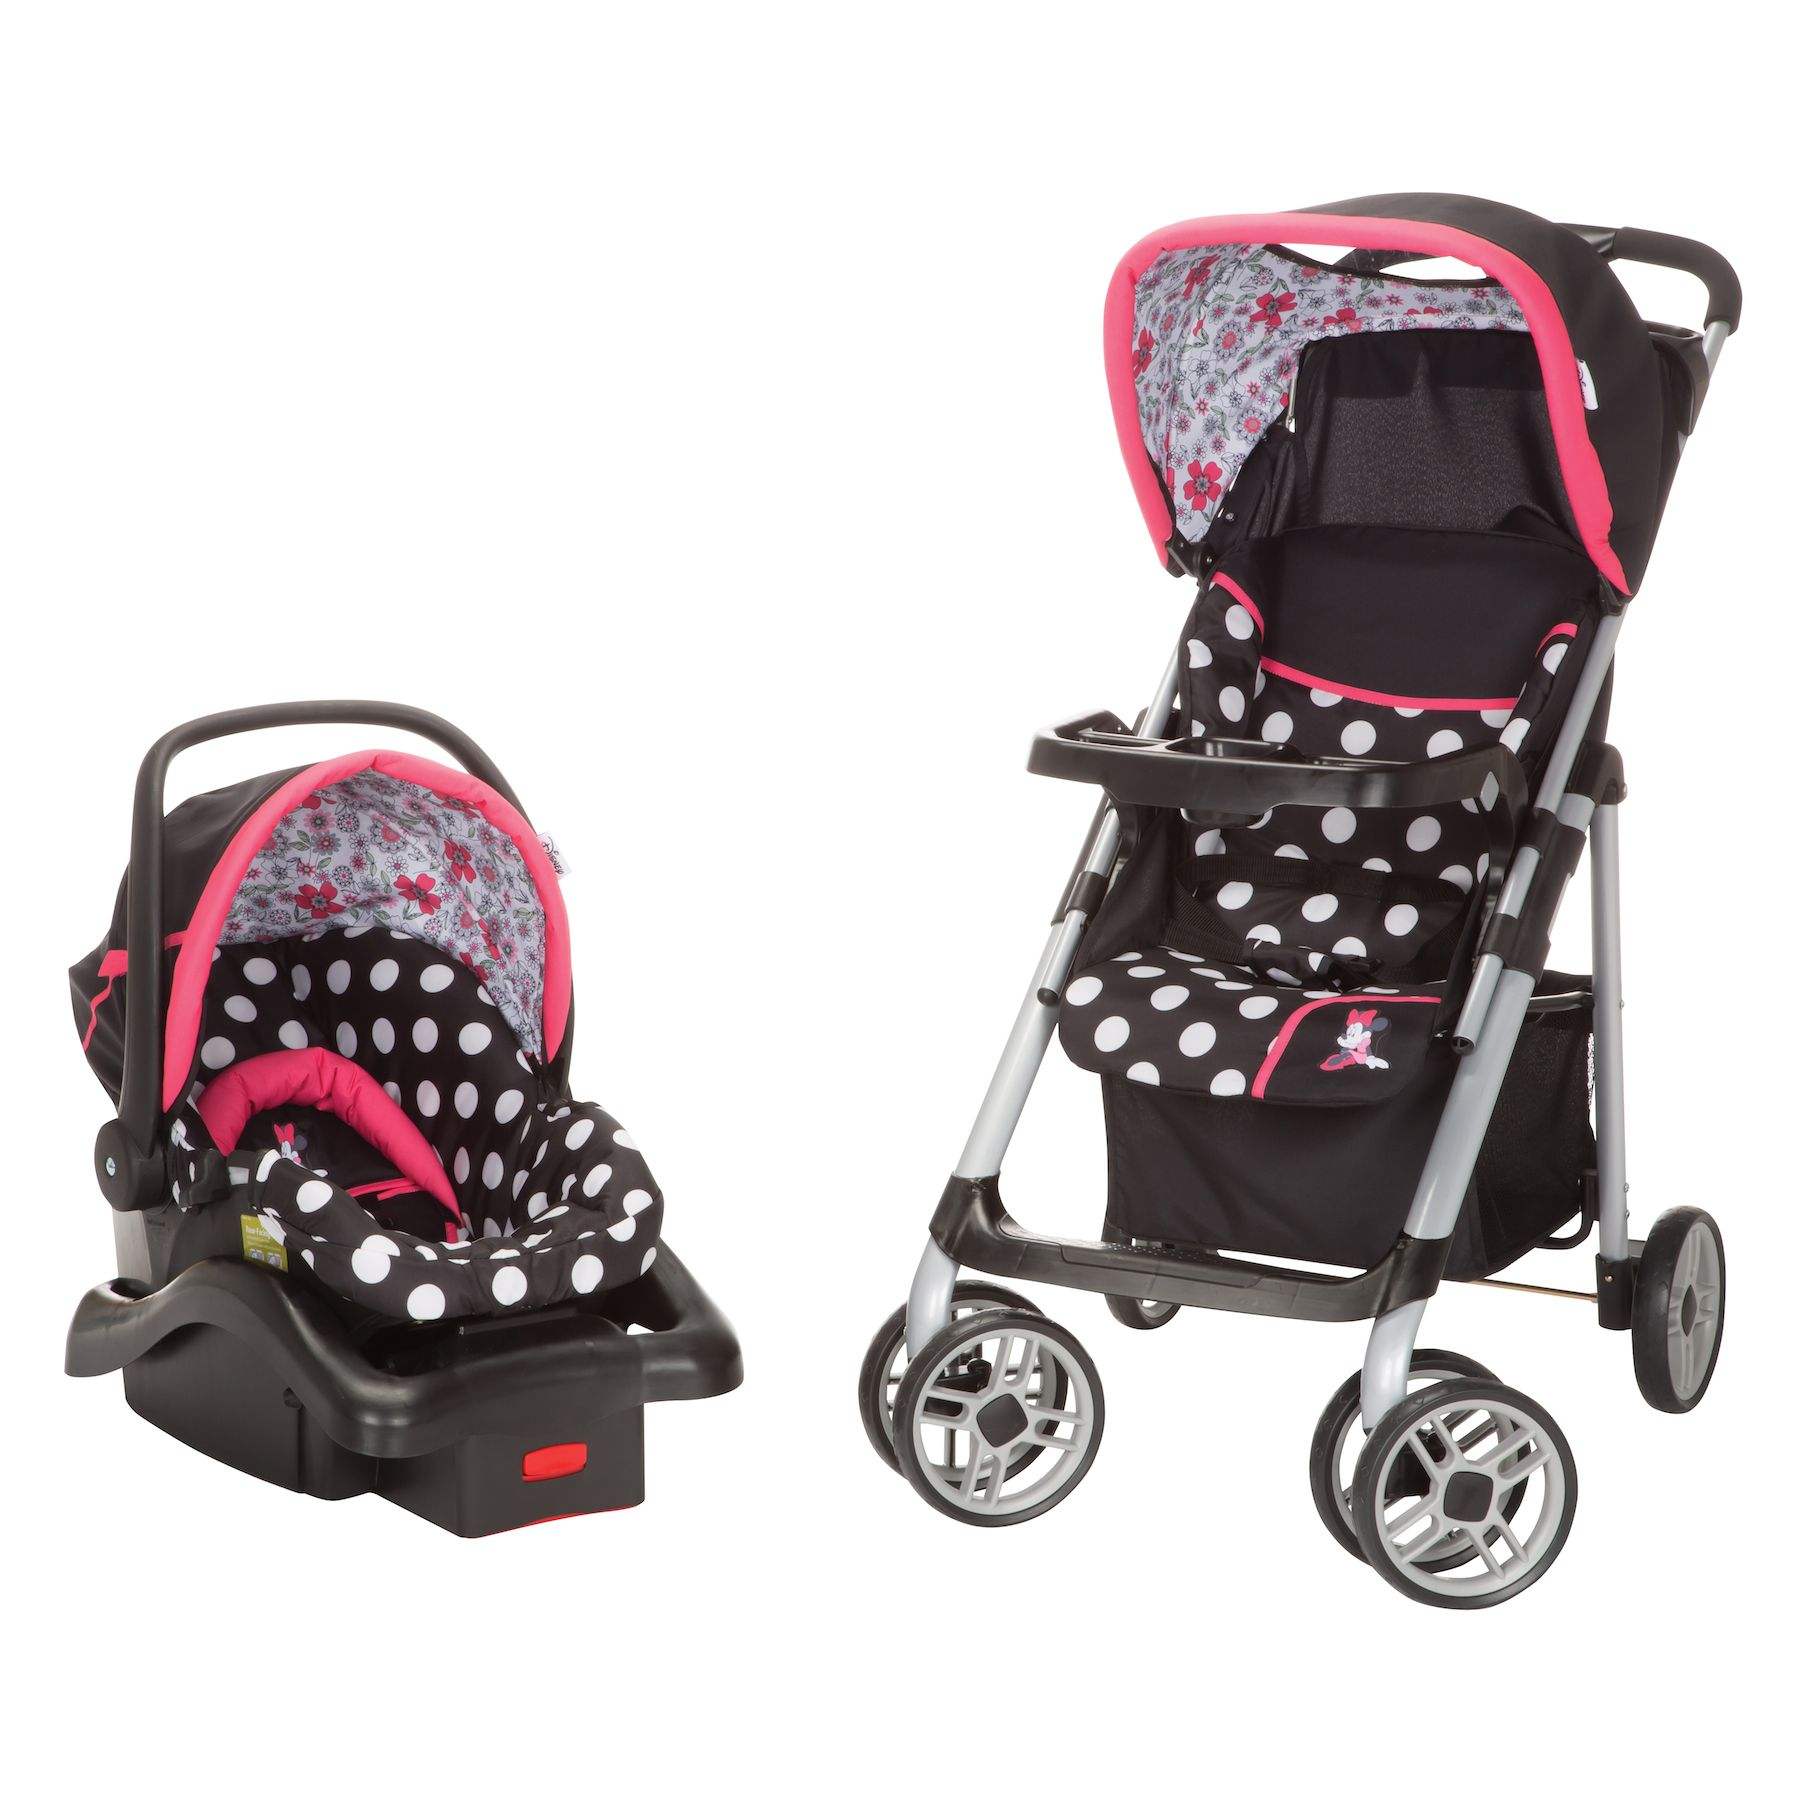 Keep fashion strollin along This black and pink Minnie